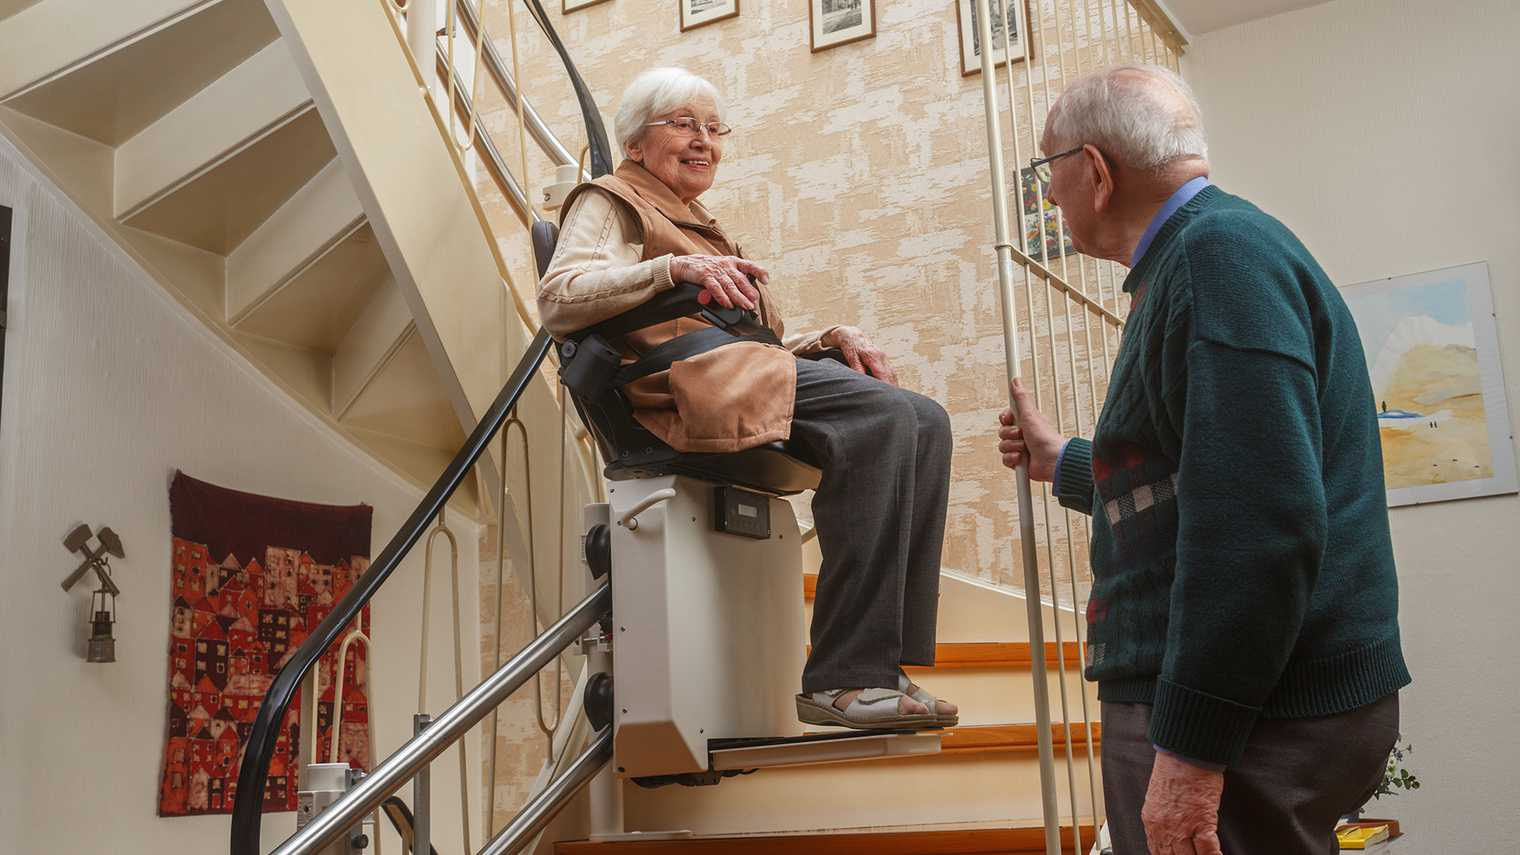 The difference between Home care and Live in care services